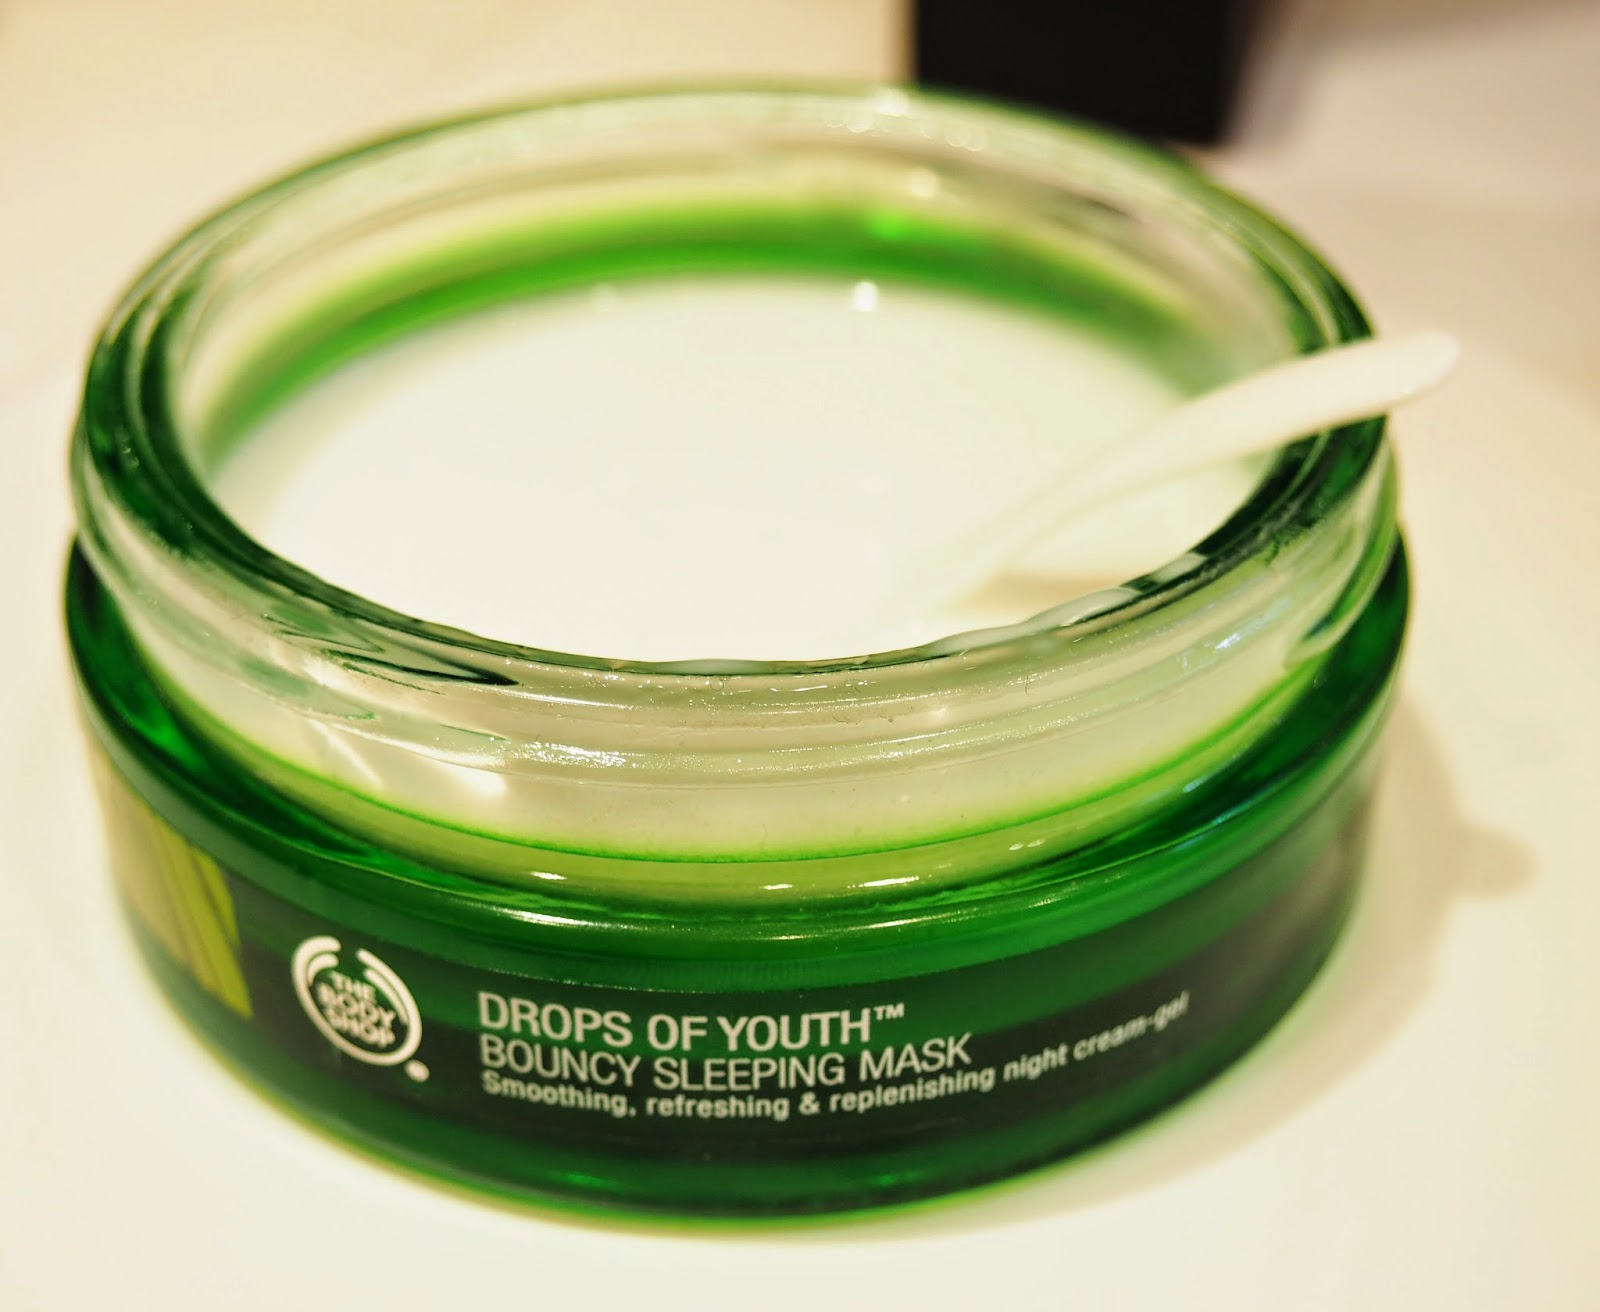 The Body Shop Skincare Drops Of Youth Bouncy Sleeping Mask